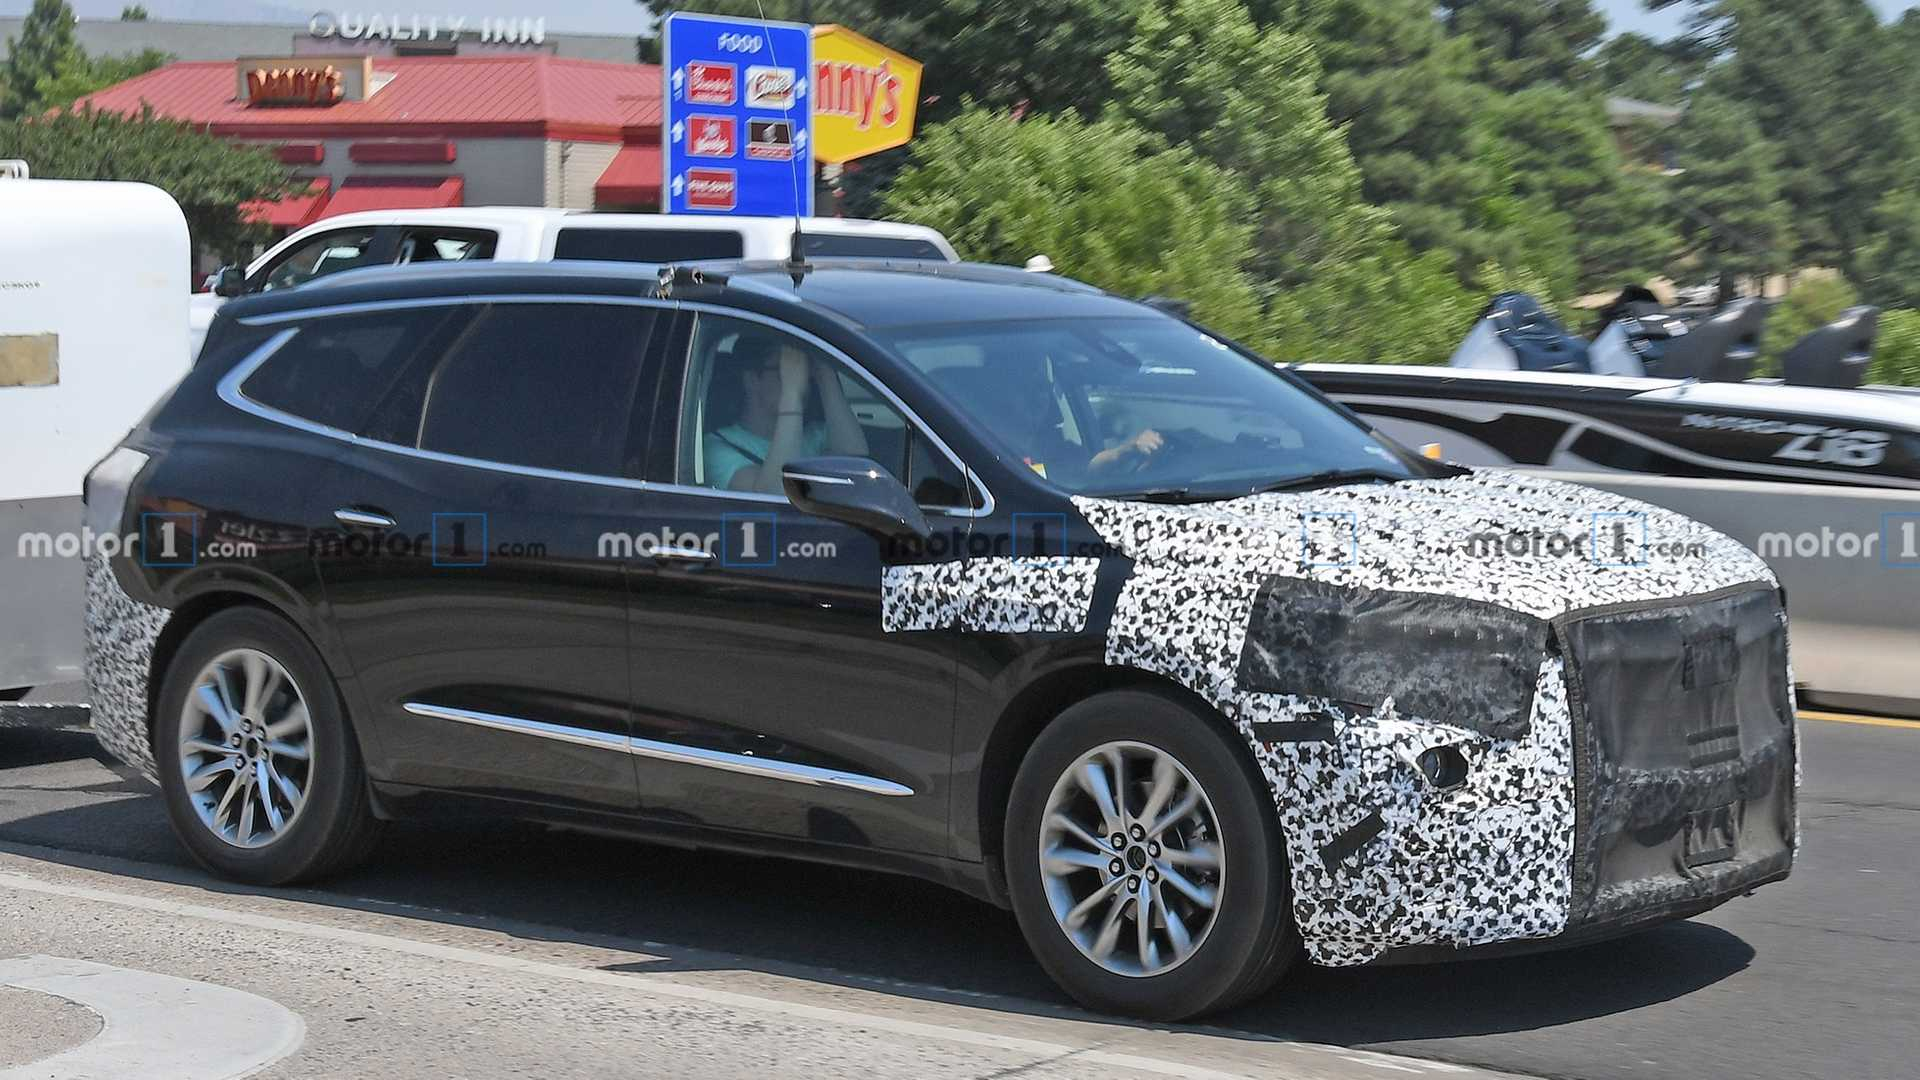 2021 Buick Enclave Spied For The First Time 2021 Buick Enclave New Colors, Oil Type, Options